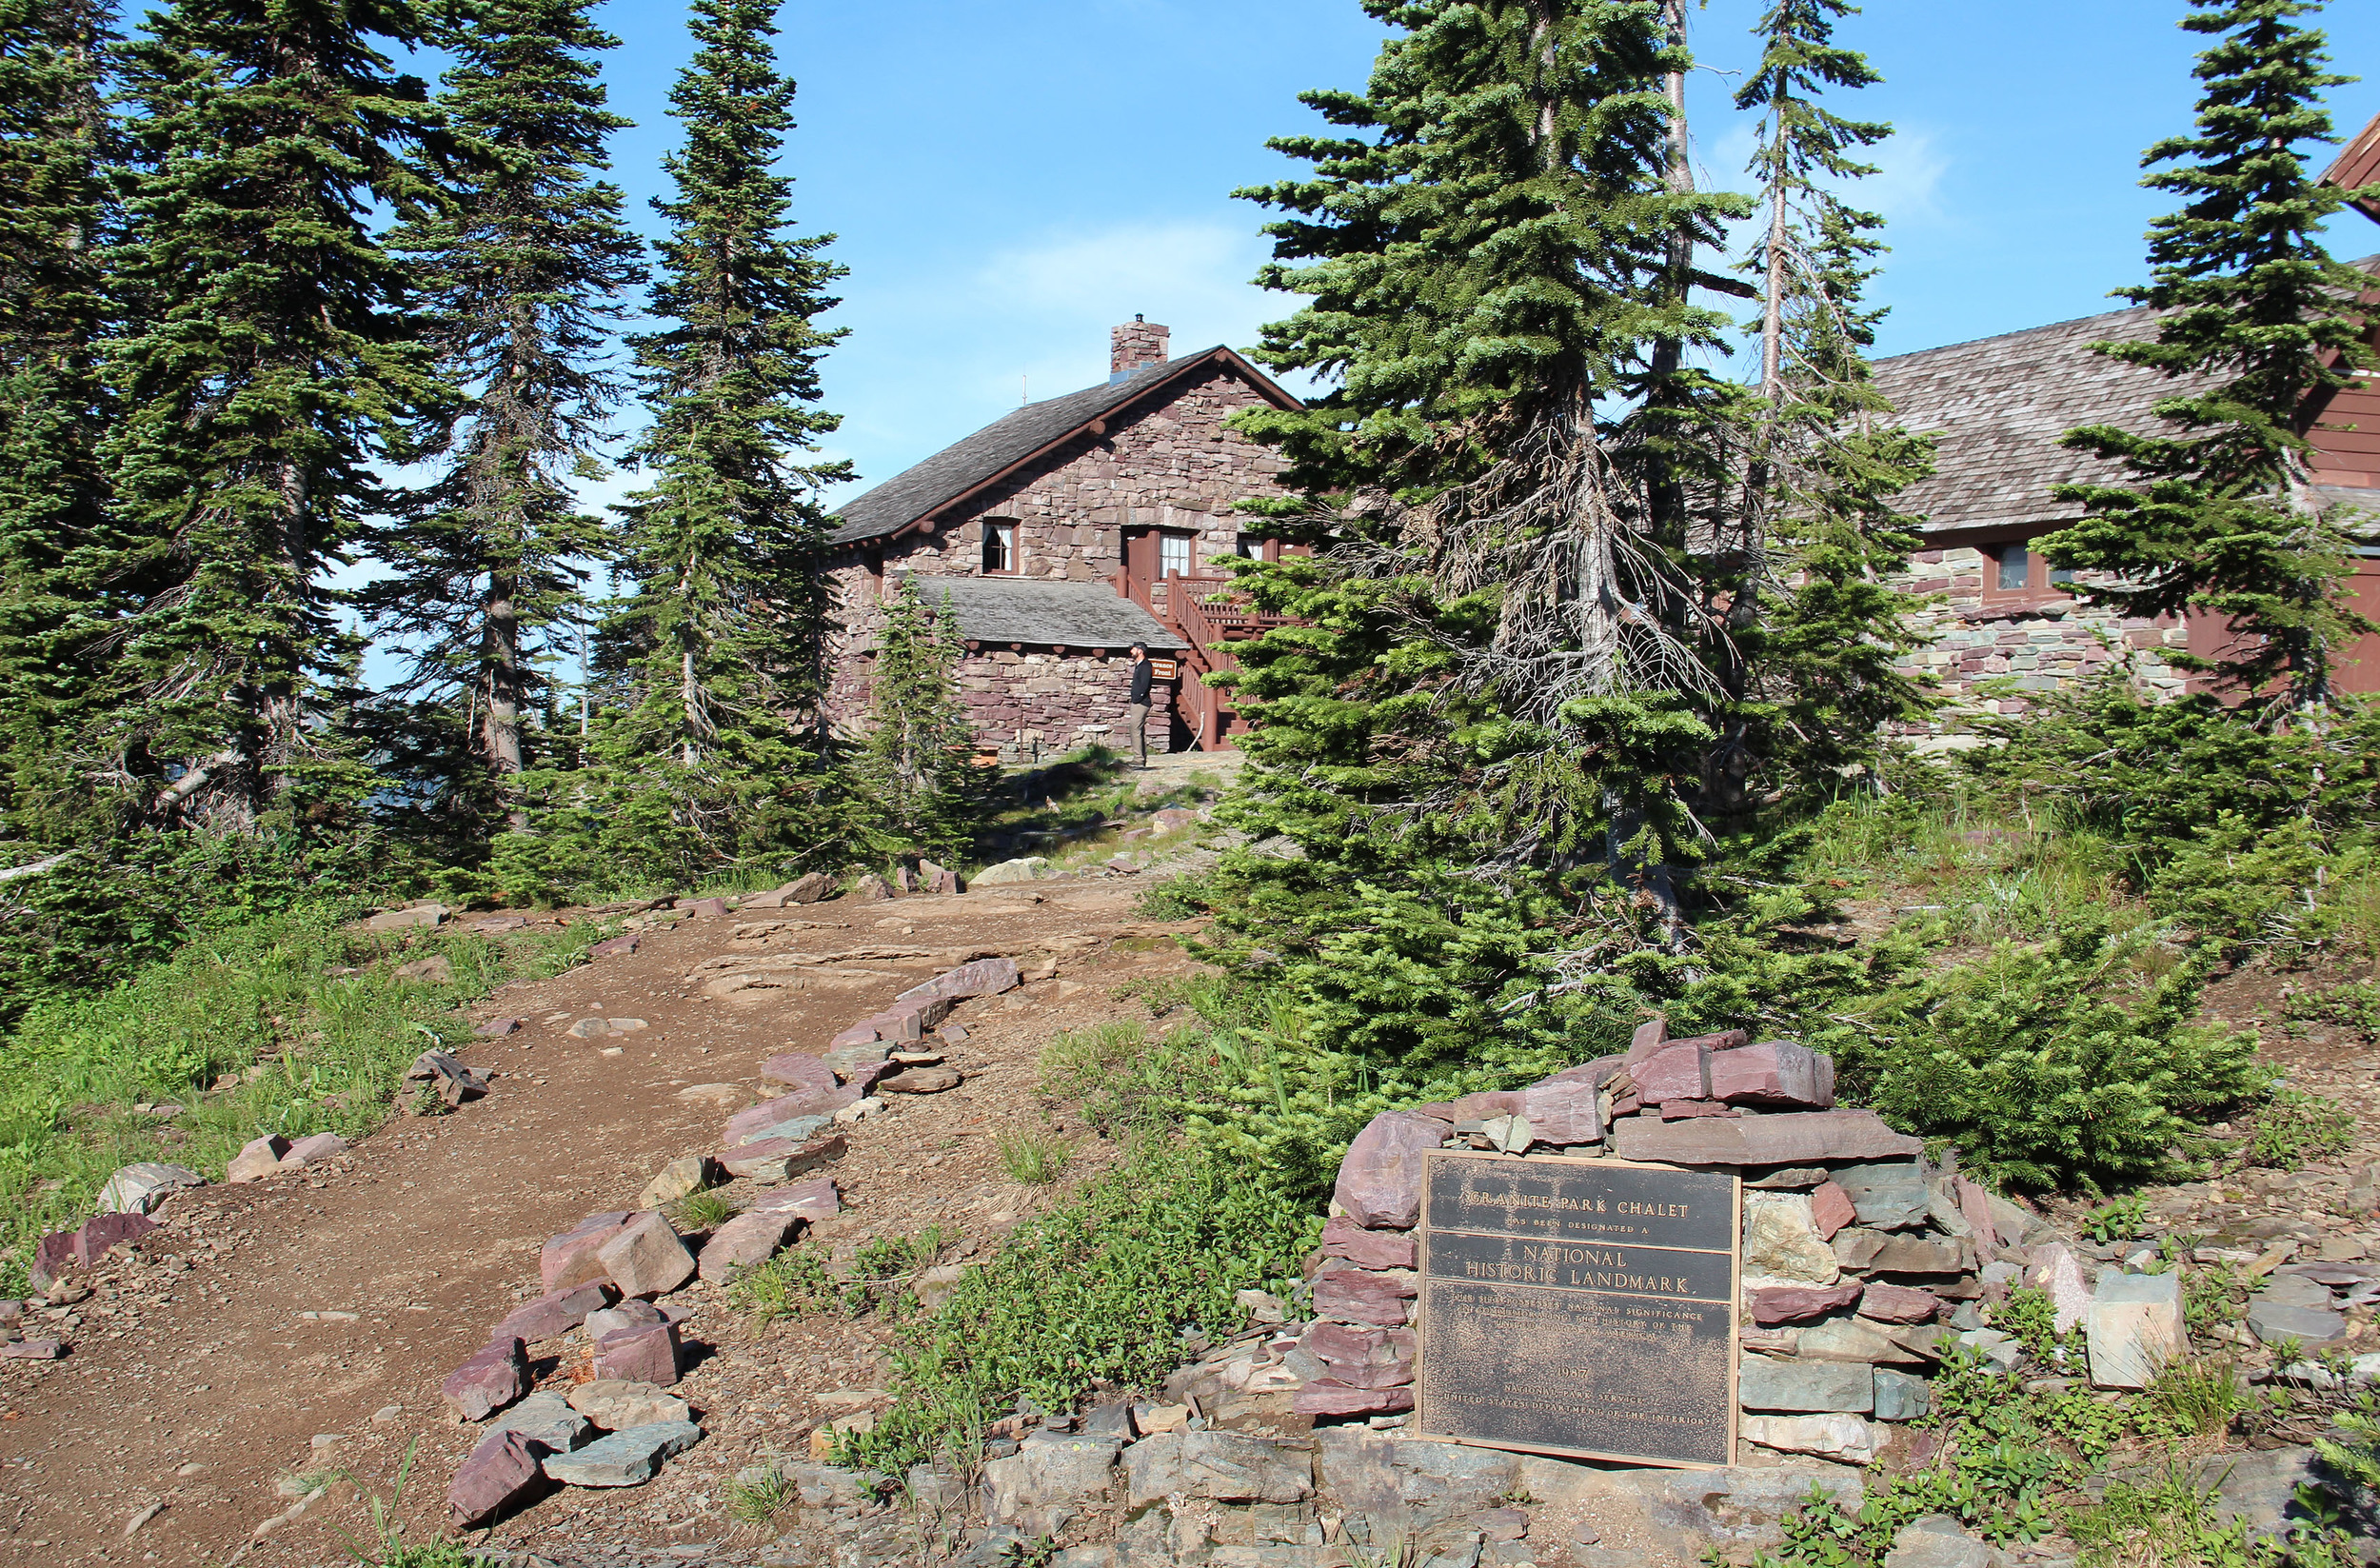 Granite Park Chalet with sign.jpg